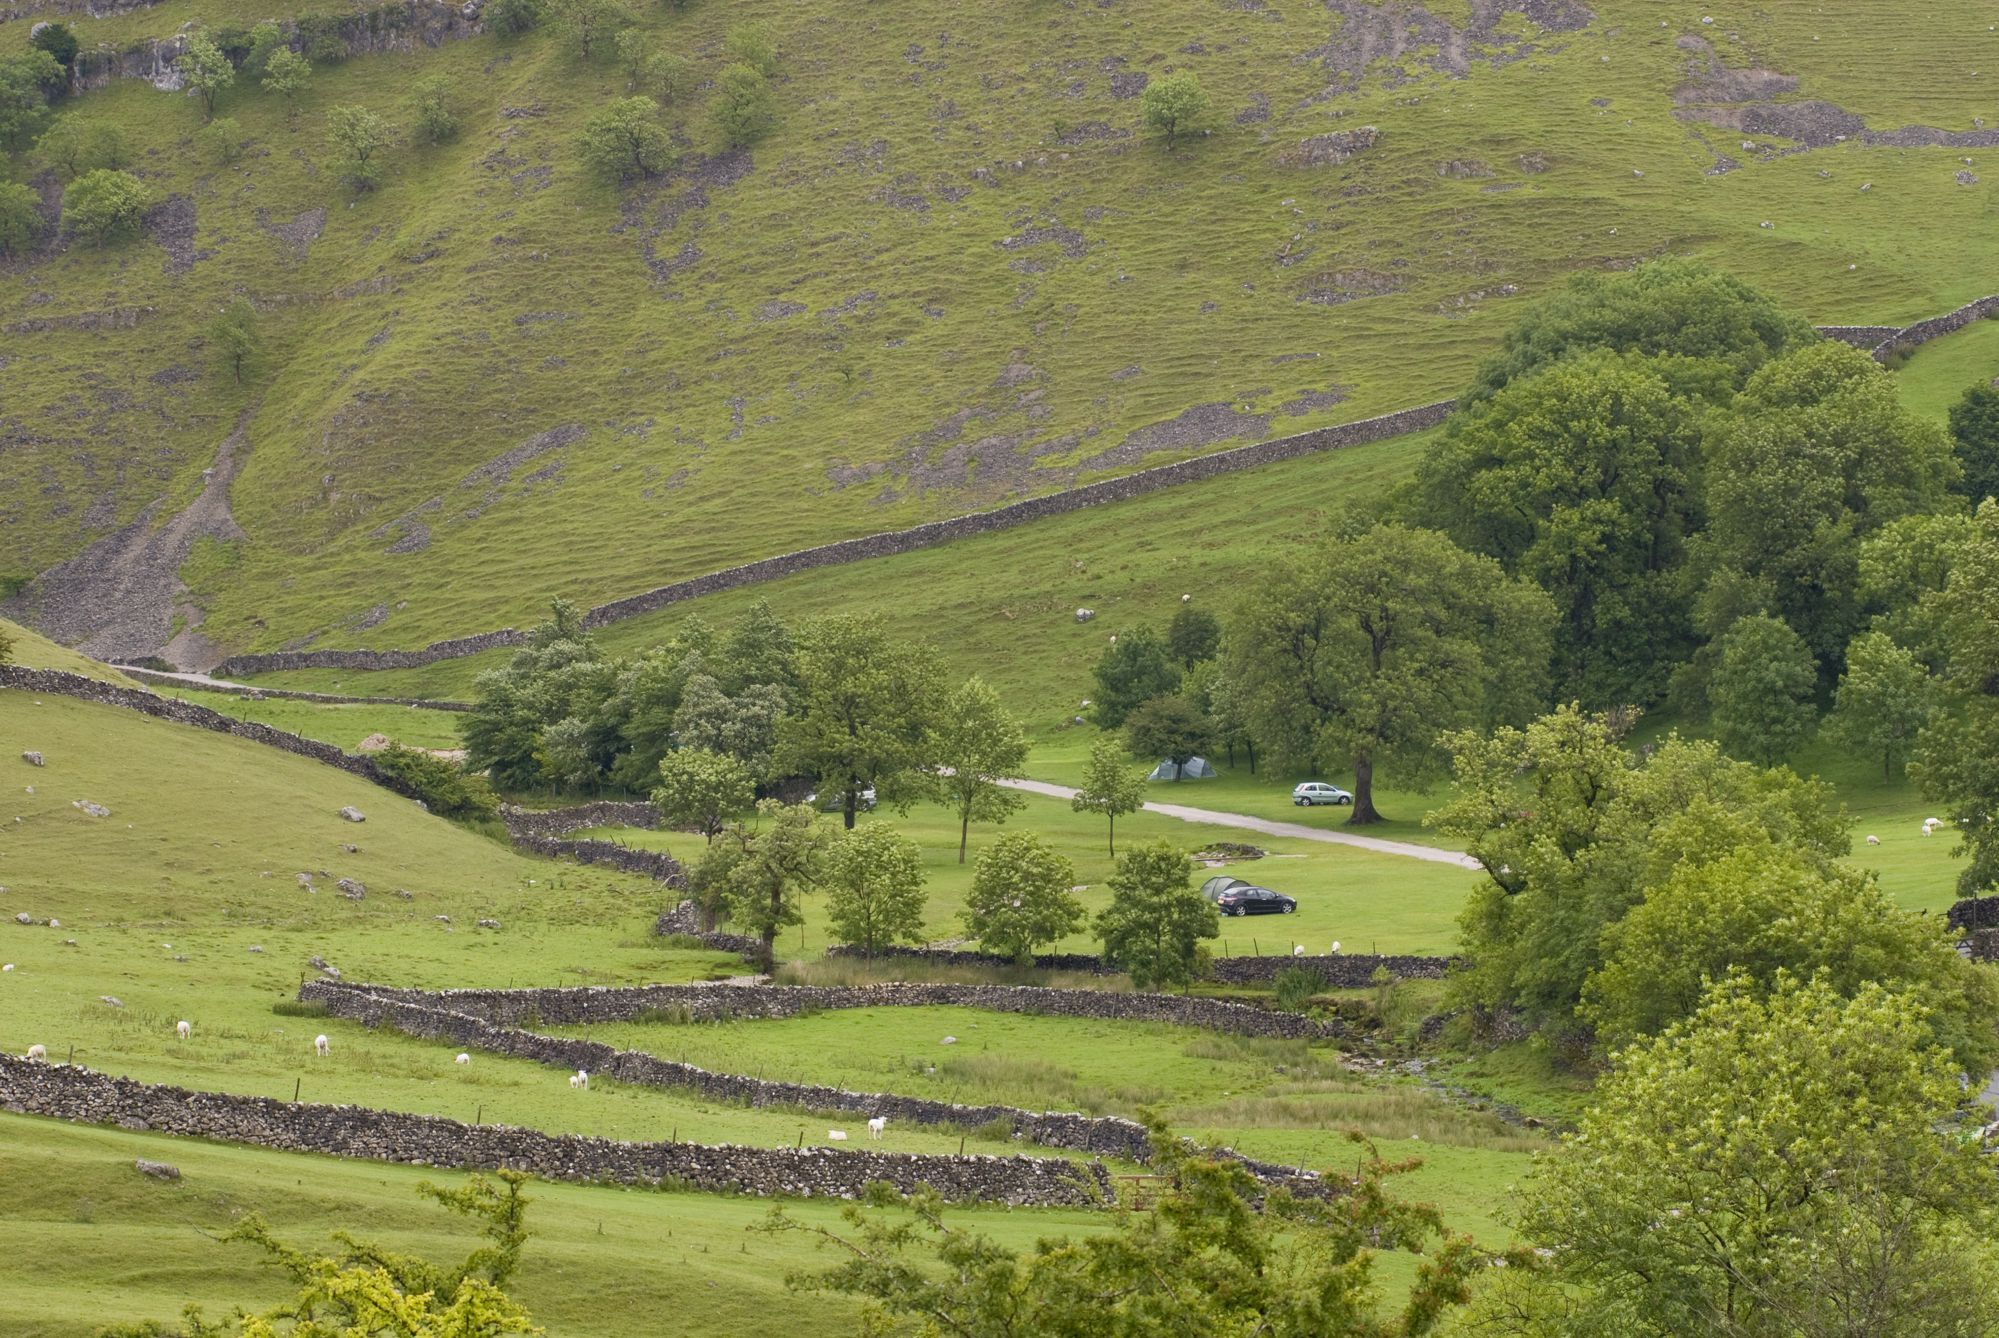 Best campsites in the Yorkshire Dales National Park